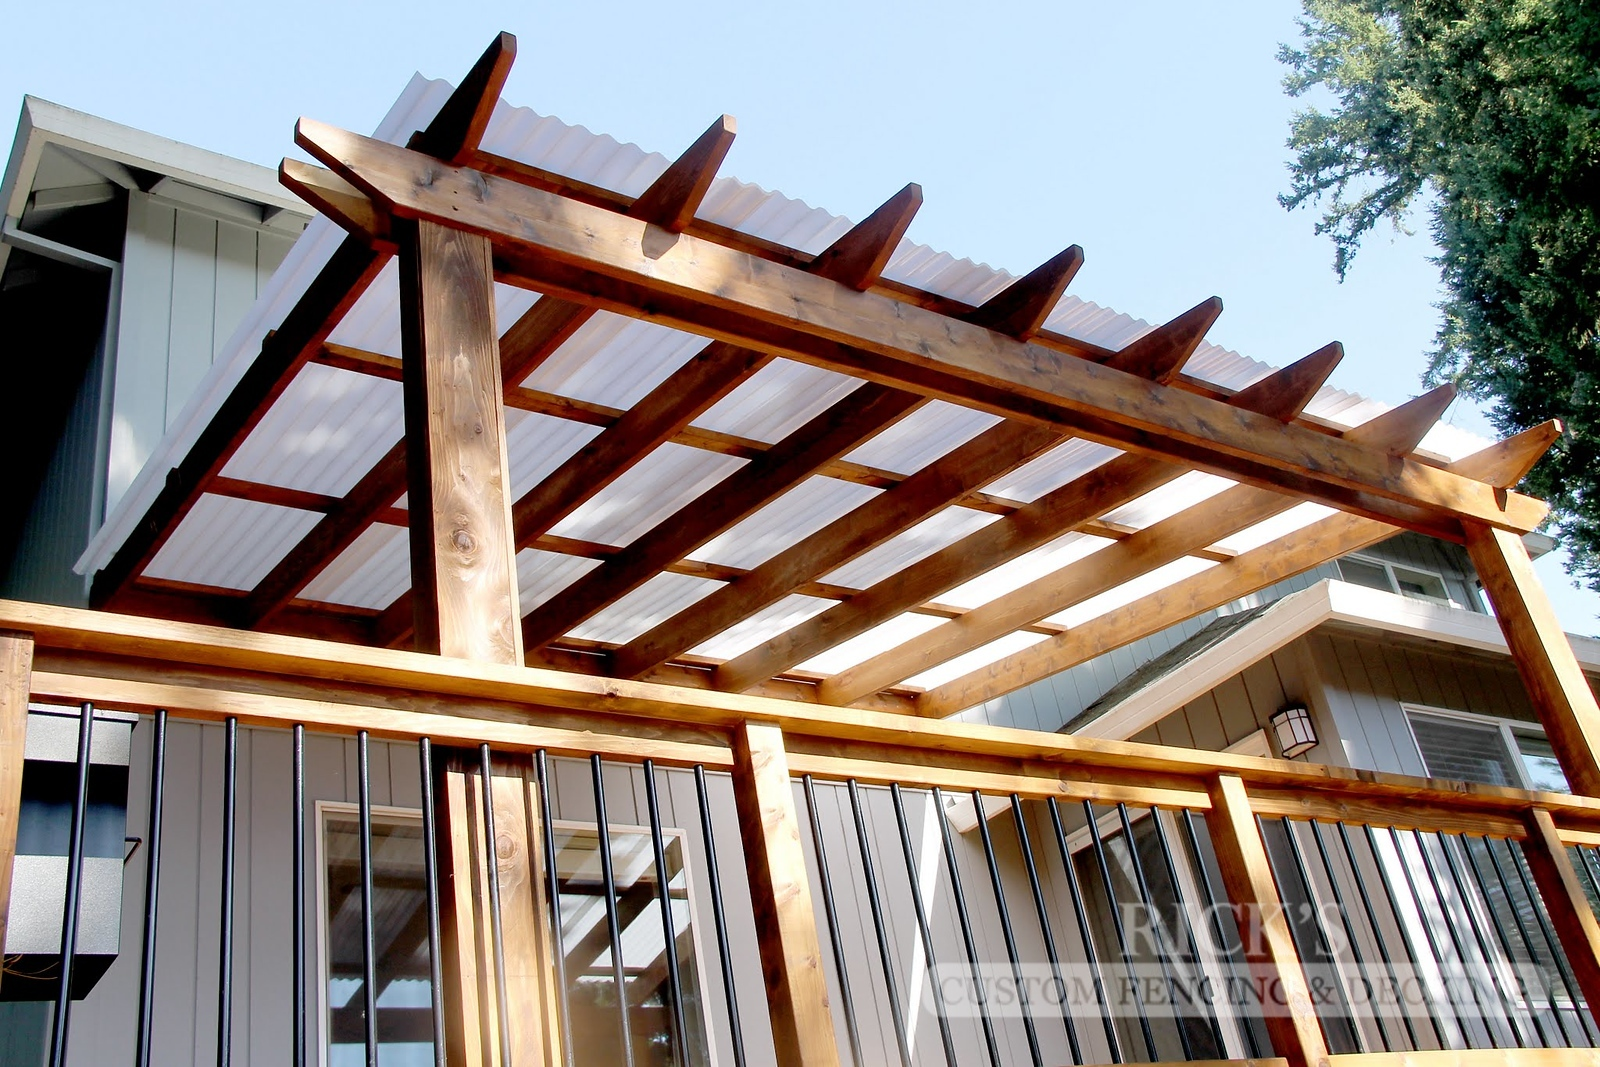 5057 - Wood-Framed Patio Cover with Acrylite Paneling